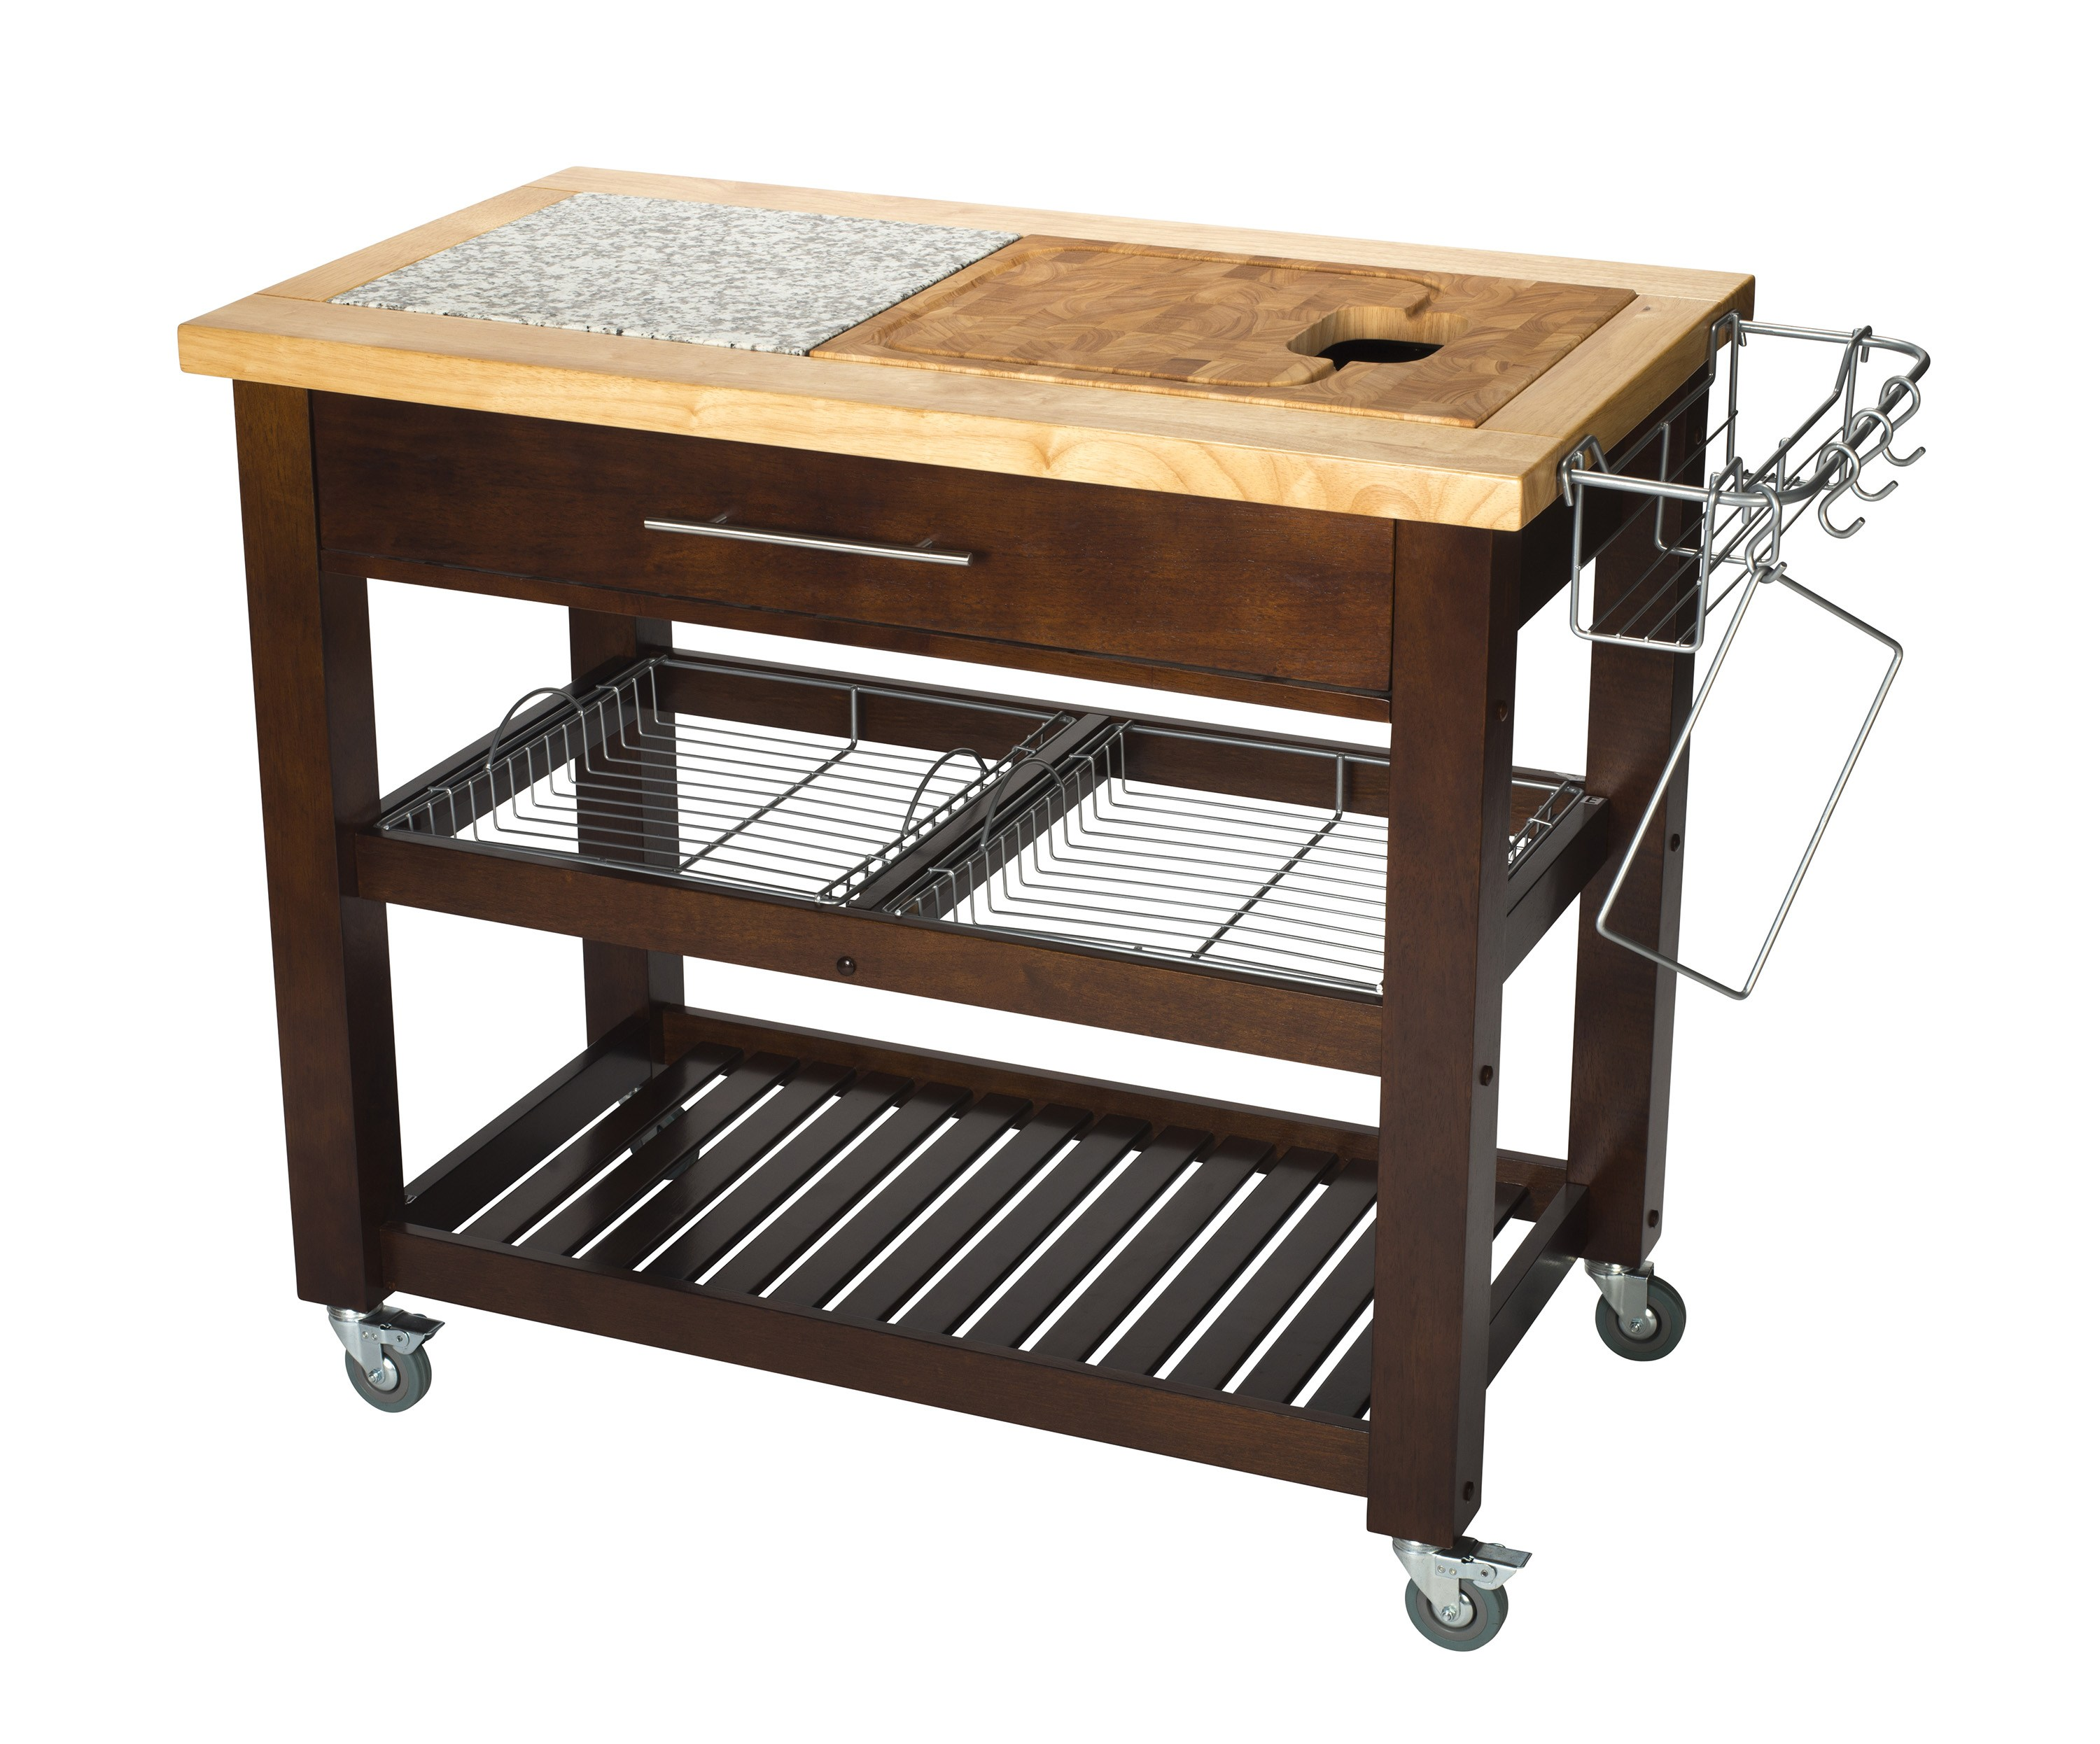 chris and kitchen cart floor to ceiling pantry espresso colored work station